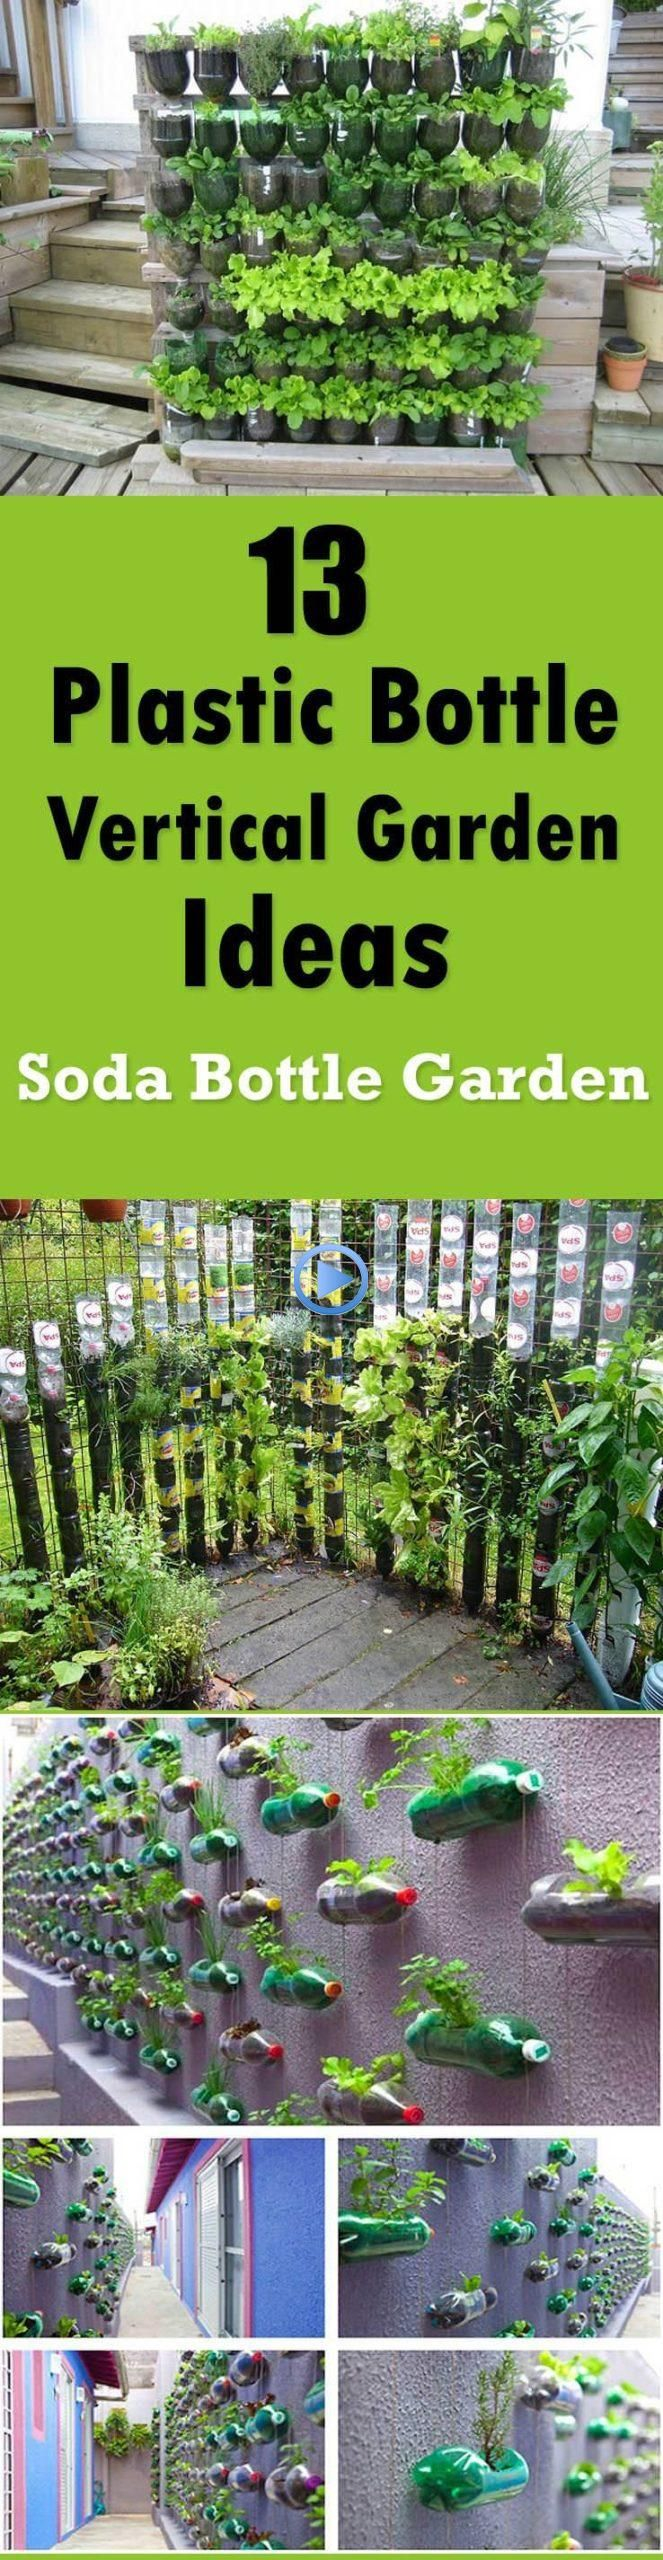 13 Soda Bottle Vertical Garden Ideas #gardening